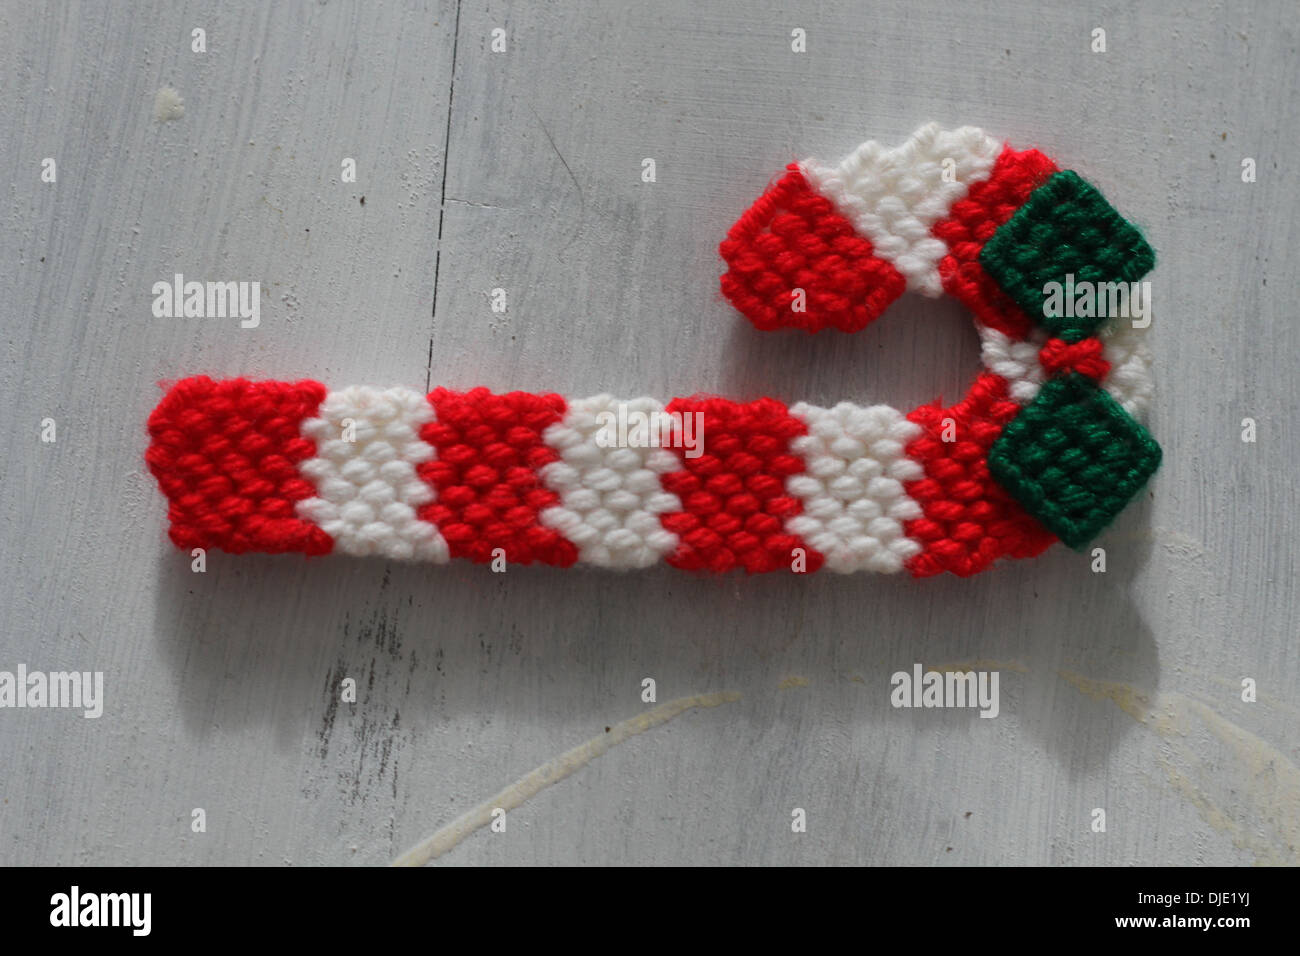 A Crochet Christmas Candy Cane Stock Photo 63003798 Alamy